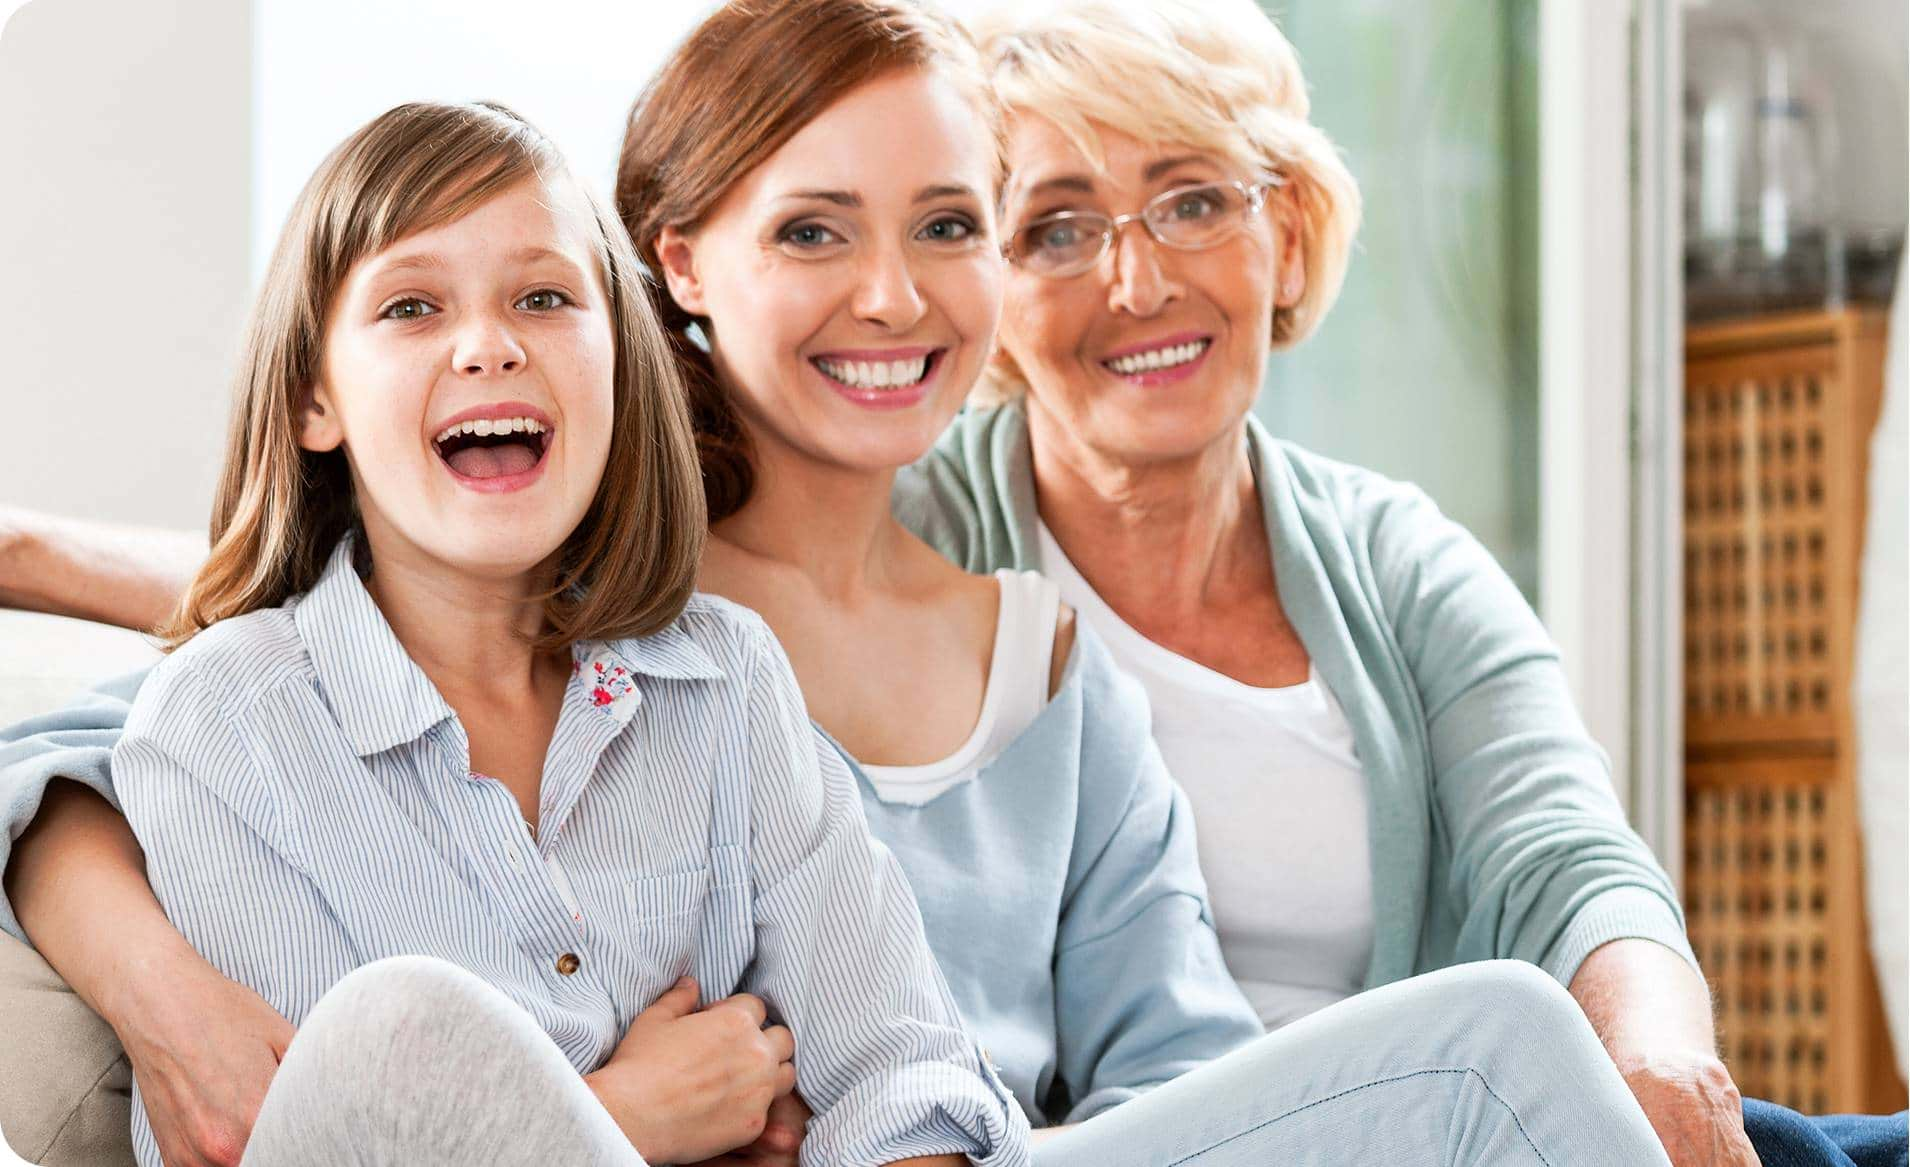 https://www.istockphoto.com/au/photo/three-generation-gm471932655-29862654